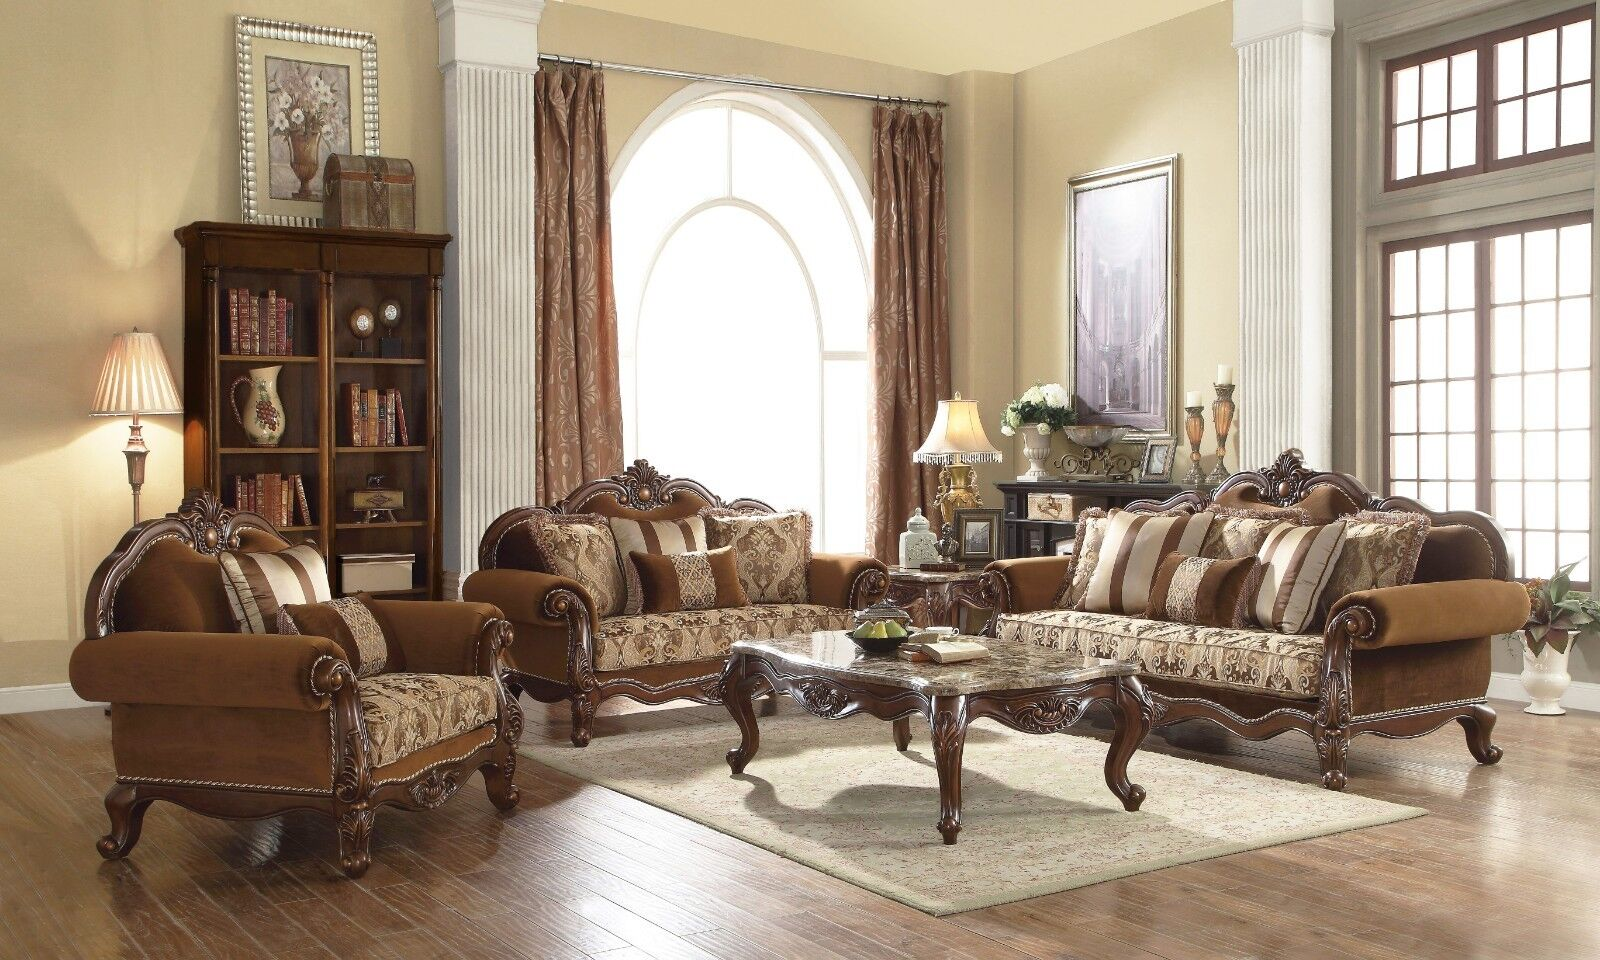 Vendome Victorian 6pc Traditional Living Room Sofa Set Brown Cherry Carved Frame Home Garden Furniture Sofas Loveseats Chaises